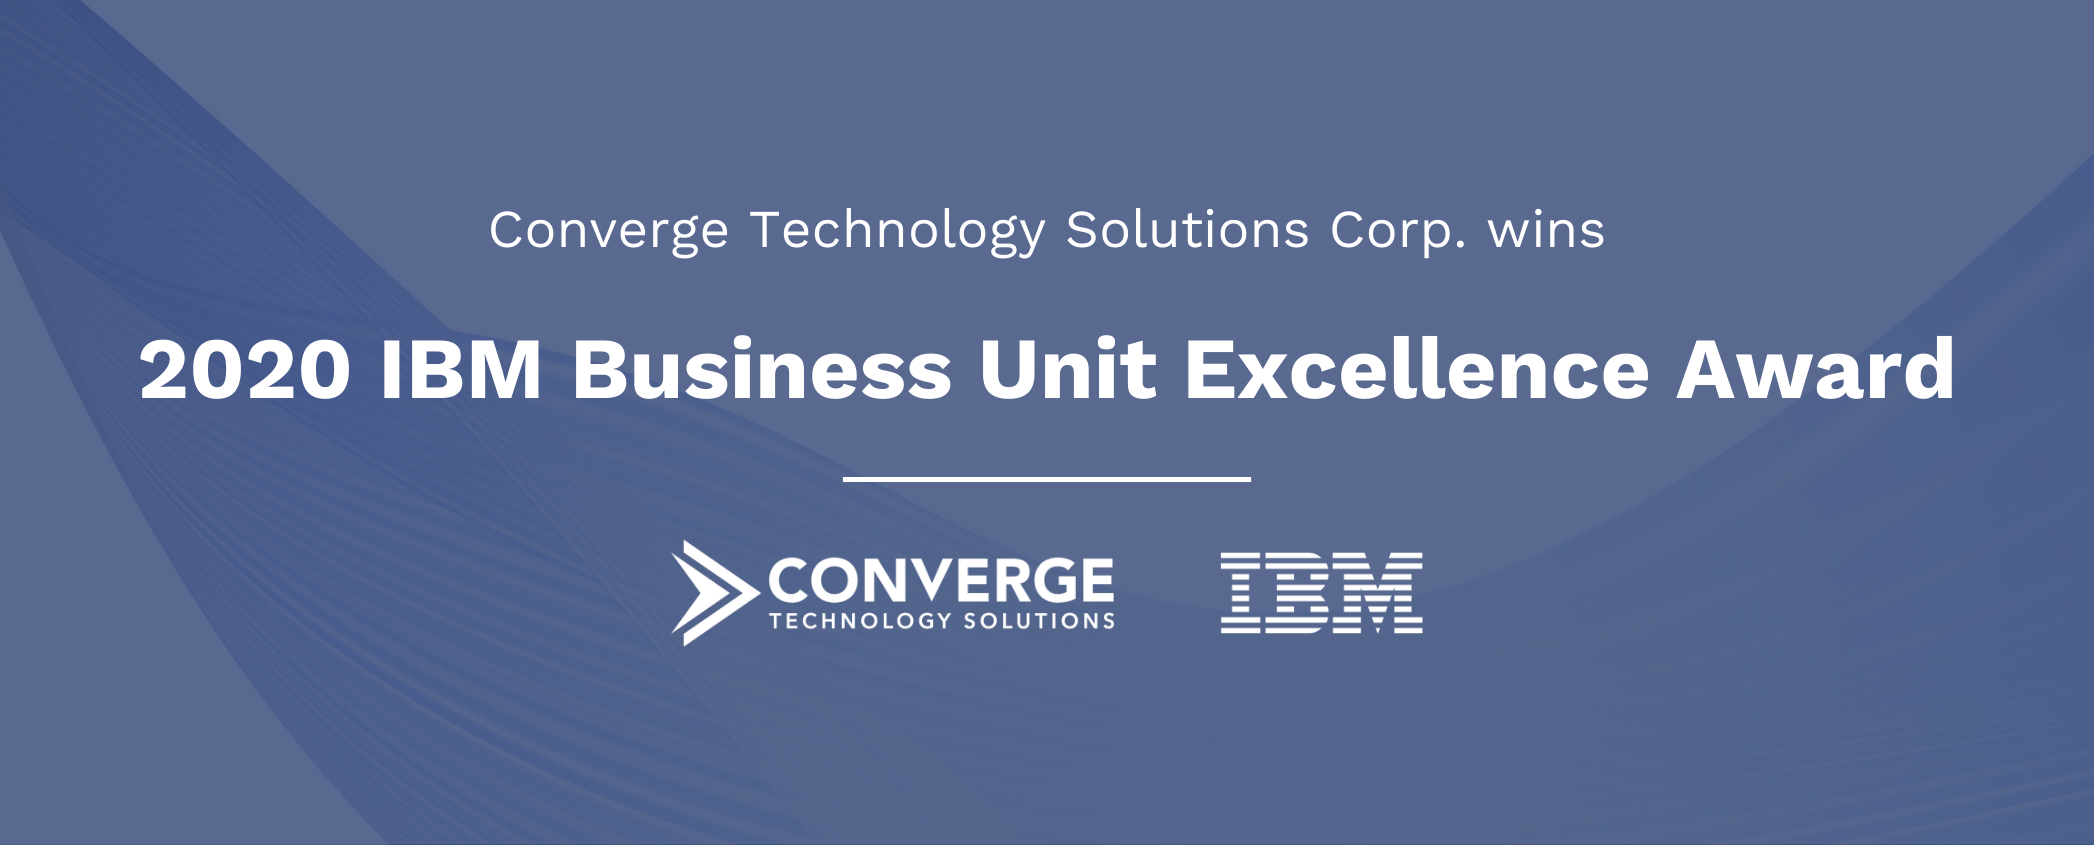 Converge-Technology-Solutions-Corp.-Wins-2020-IBM-Business-Unit-Excellence-Award.png